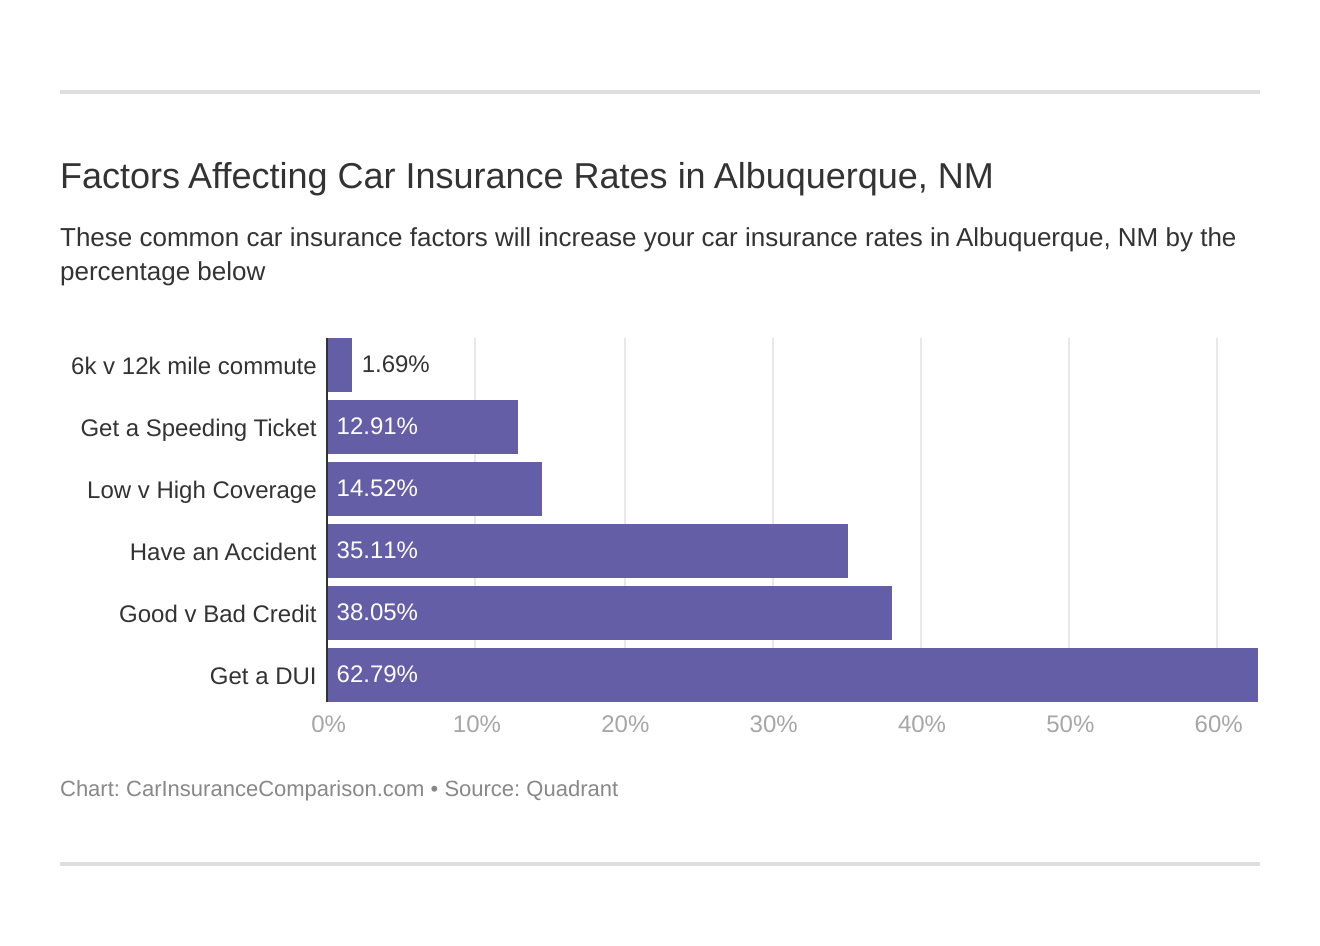 Factors Affecting Car Insurance Rates in Albuquerque, NM